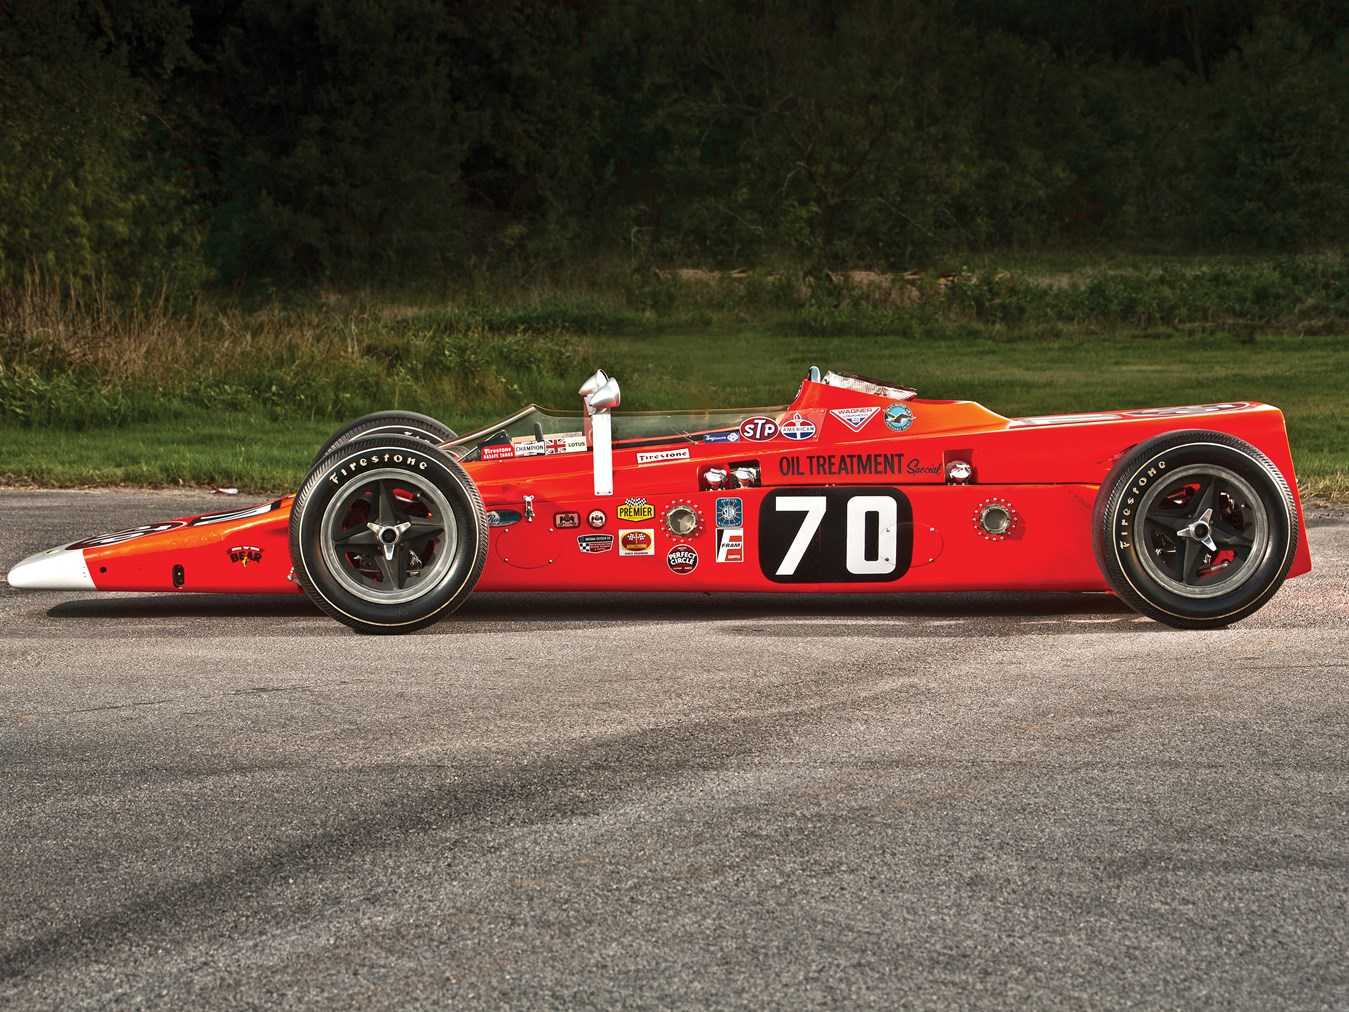 The Maurice Phillippe wedge shaped design for the Lotus 56 was minimalist and effective at keeping the car pushed down on the road at the high Indy 500 speeds.